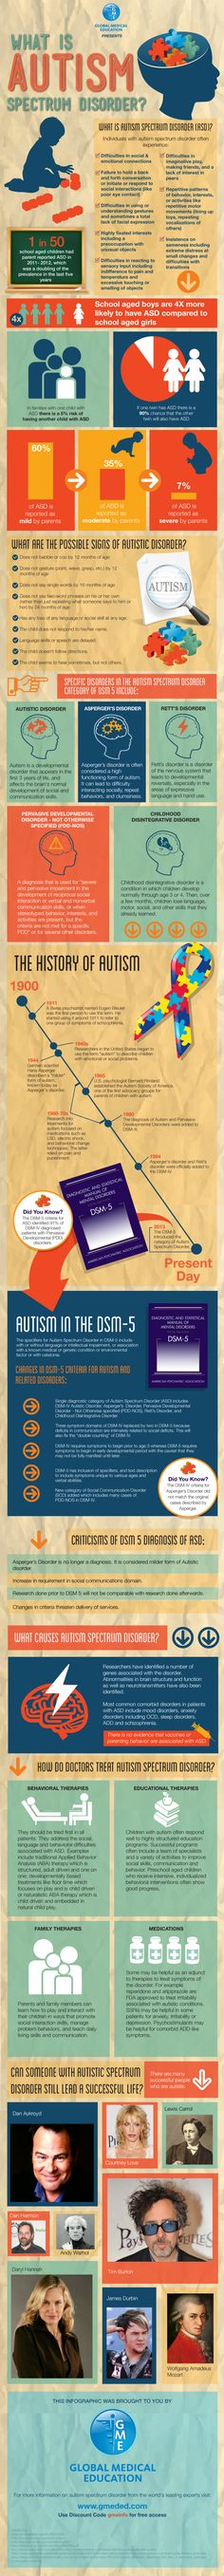 This is a fantastic infographic from GMEDED. The ispy project was created to raise awareness for Autism. 1 in 50 School aged children are diagnosed with Autism. These alarming number require action. www.ispywithmyGOOGLEeye.com